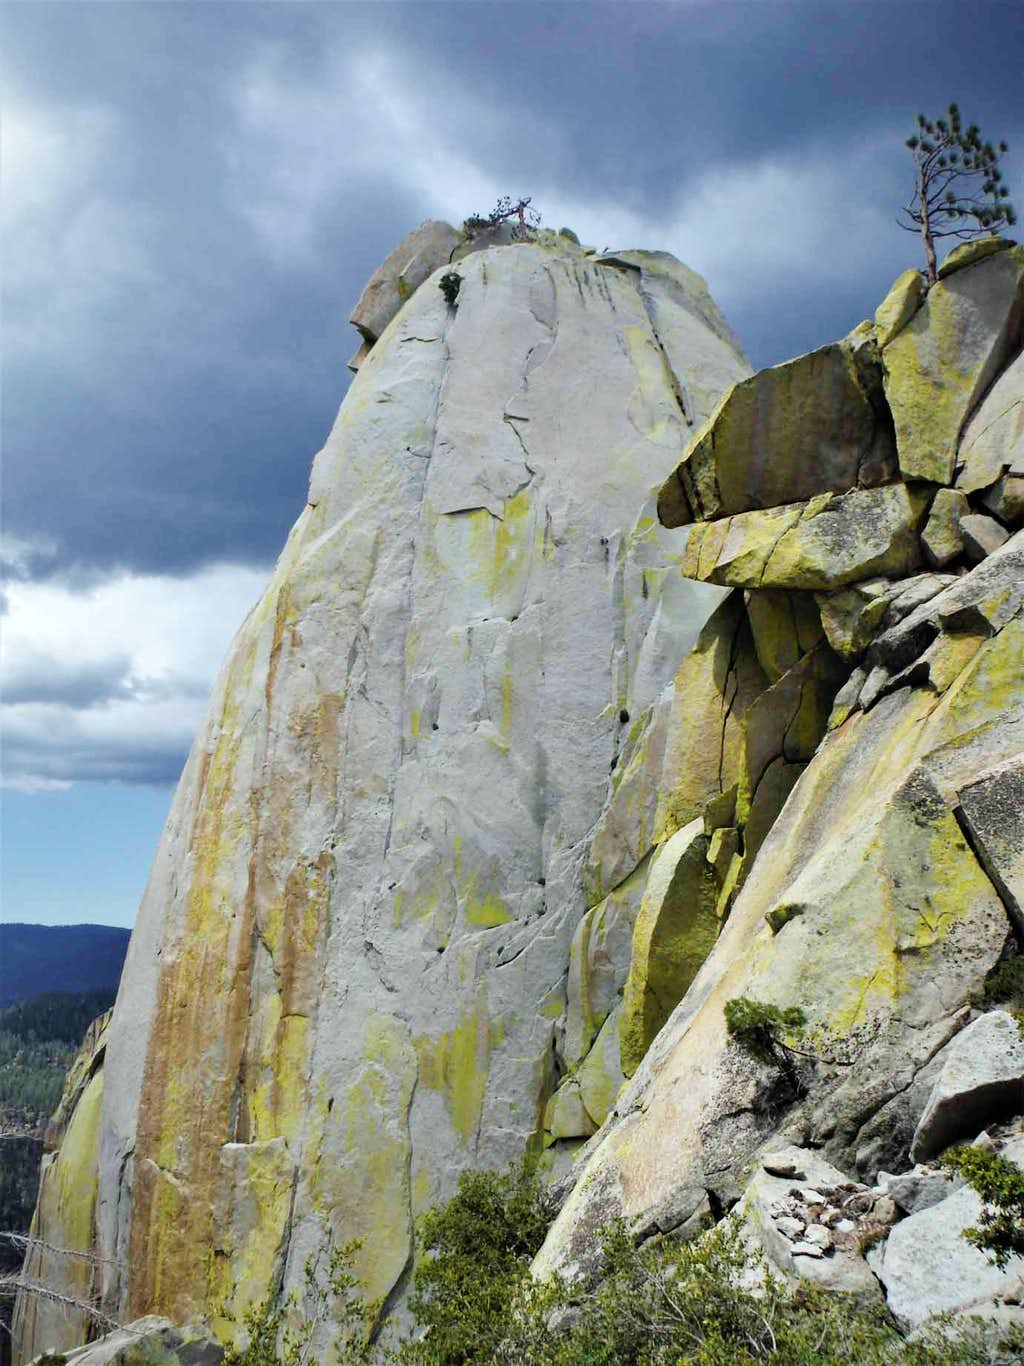 Witch Doctor, 5.10c, 3 Pitches, The Witch, Needles, June, 2020